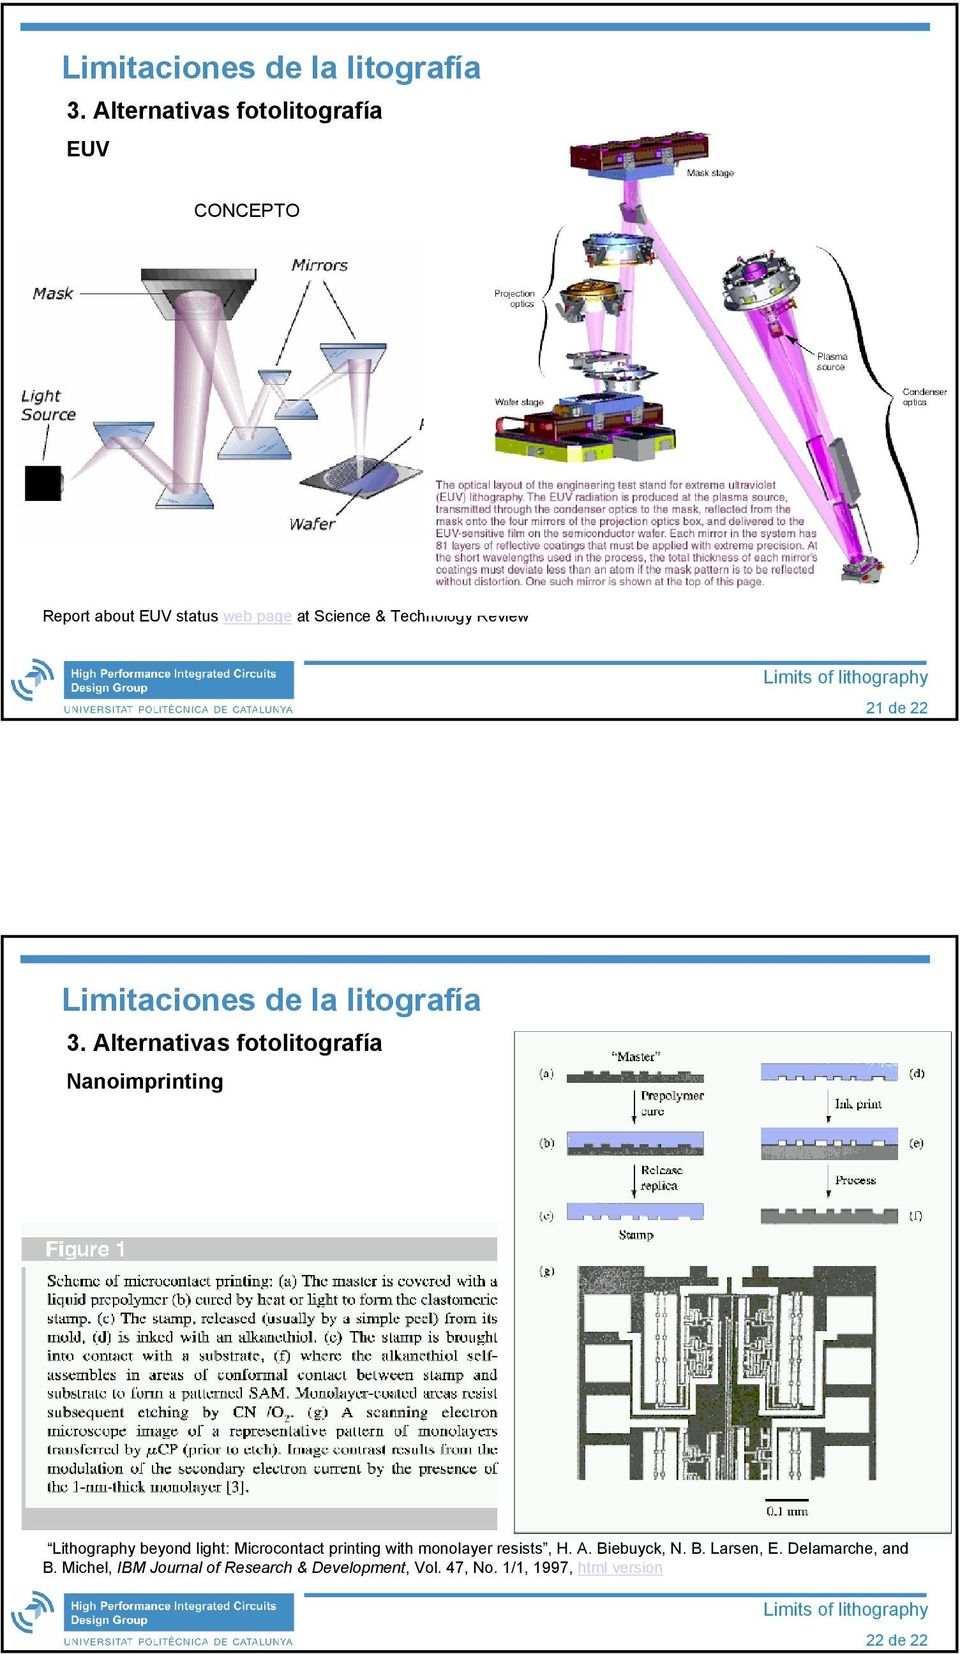 Alternativas fotolitografía Nanoimprinting Lithography beyond light: Microcontact printing